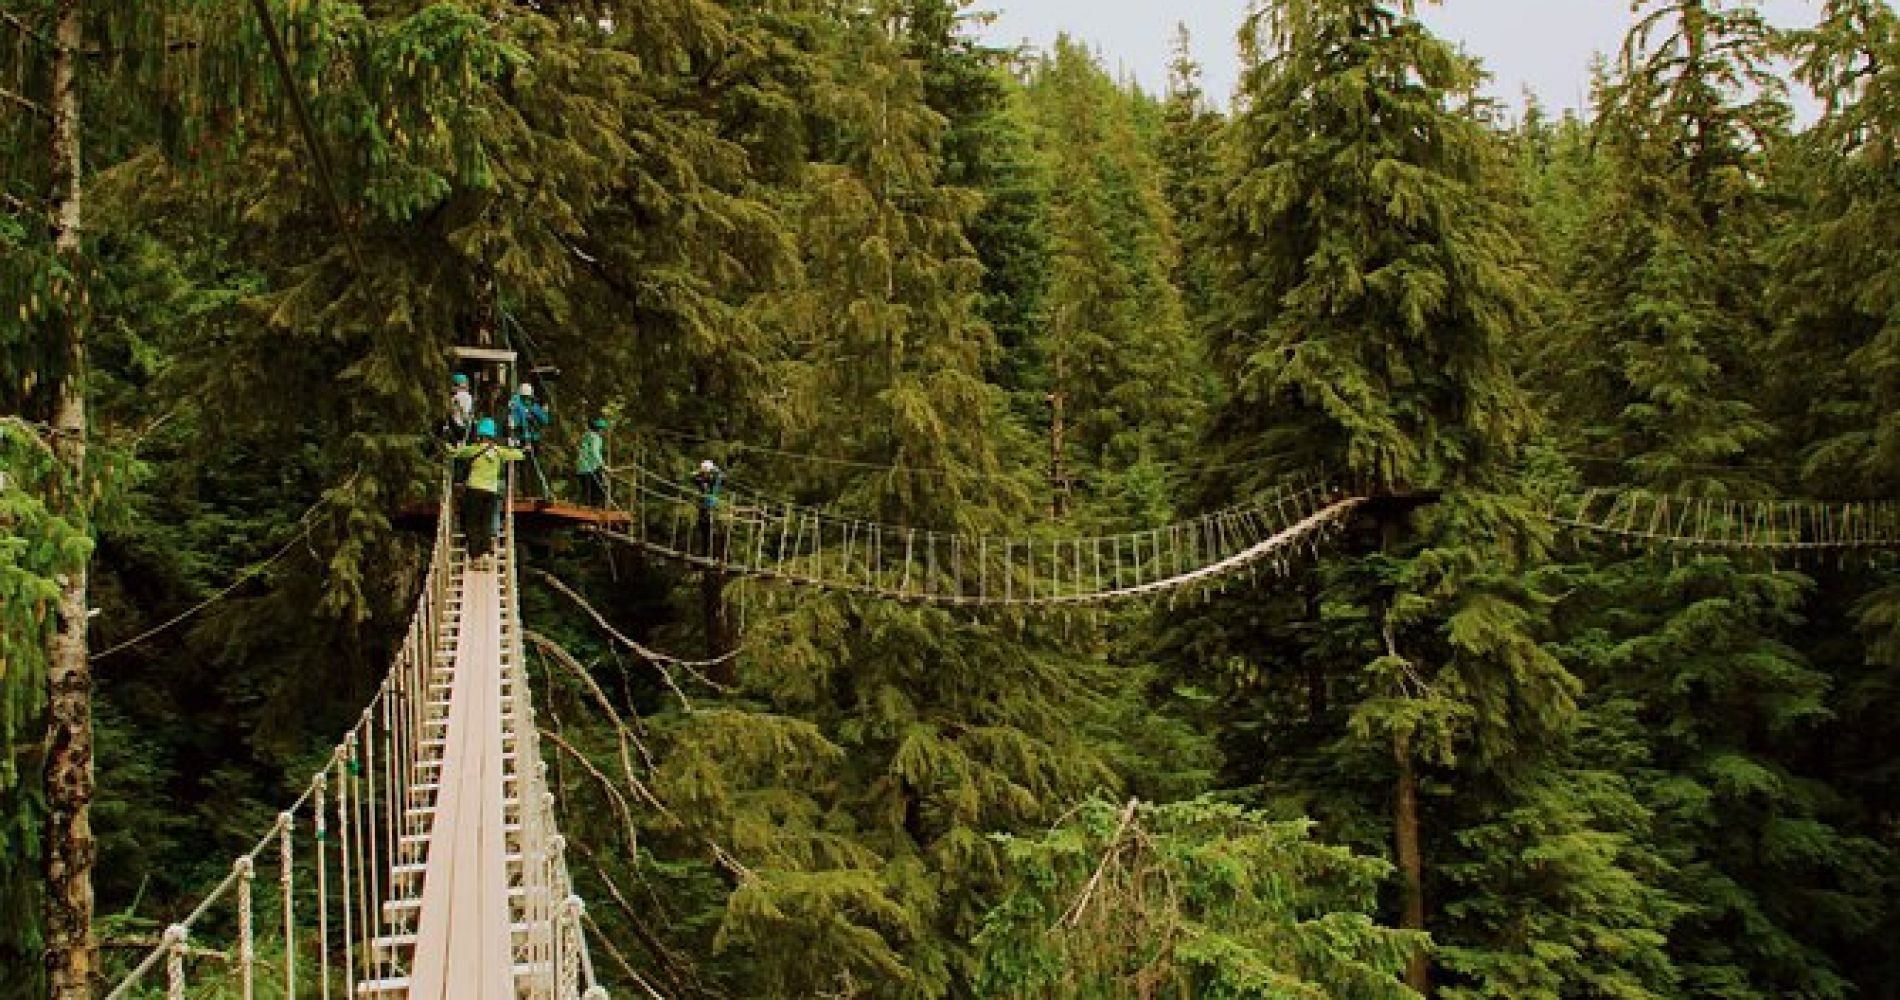 Rainforest Zip, Skybridge & Rappel Adventure in Ketchikan, AK